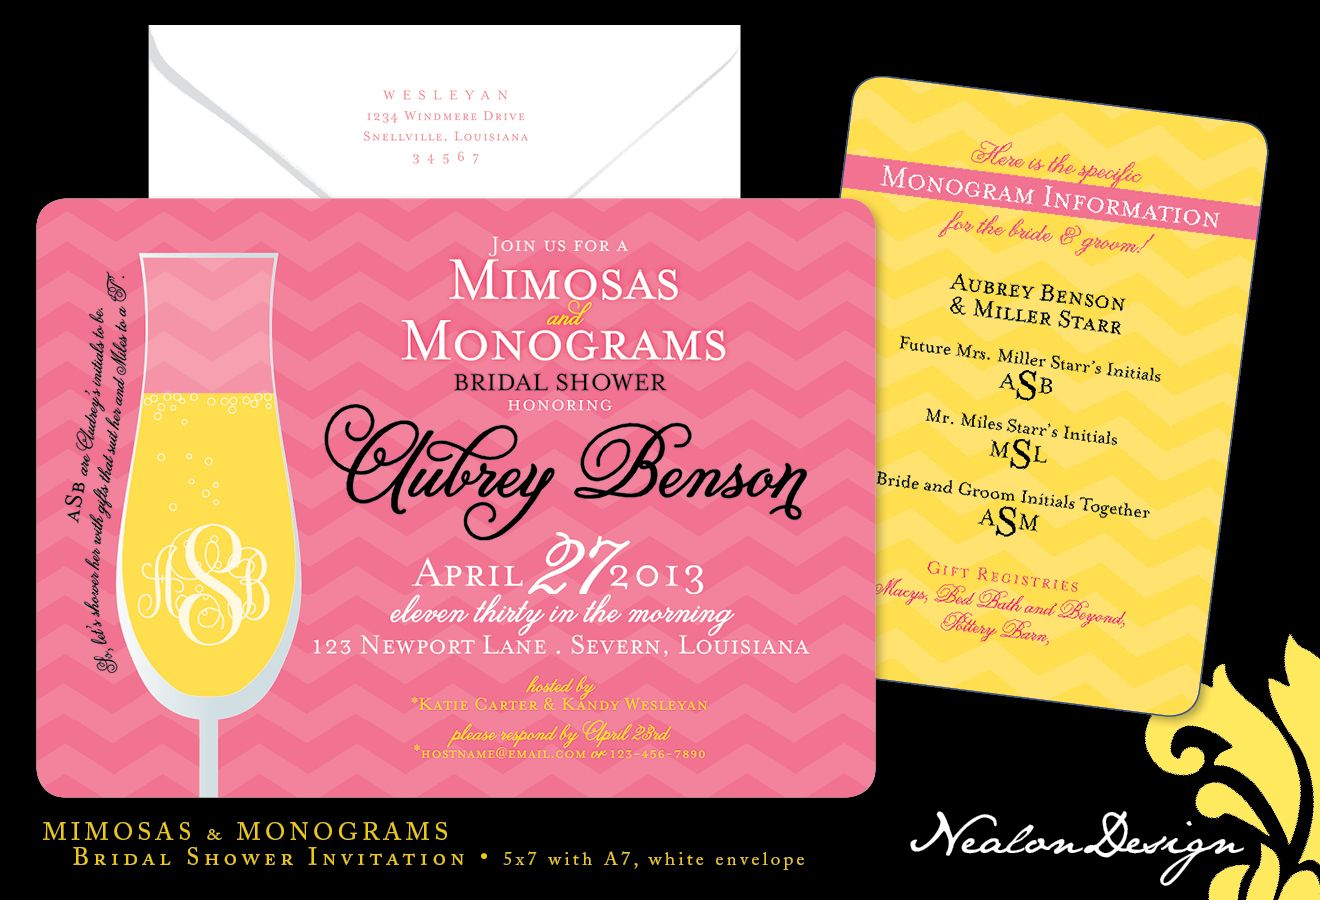 26491db95190 Nealon Design  Mimosas   Monograms — Bridal Shower Invitation ...